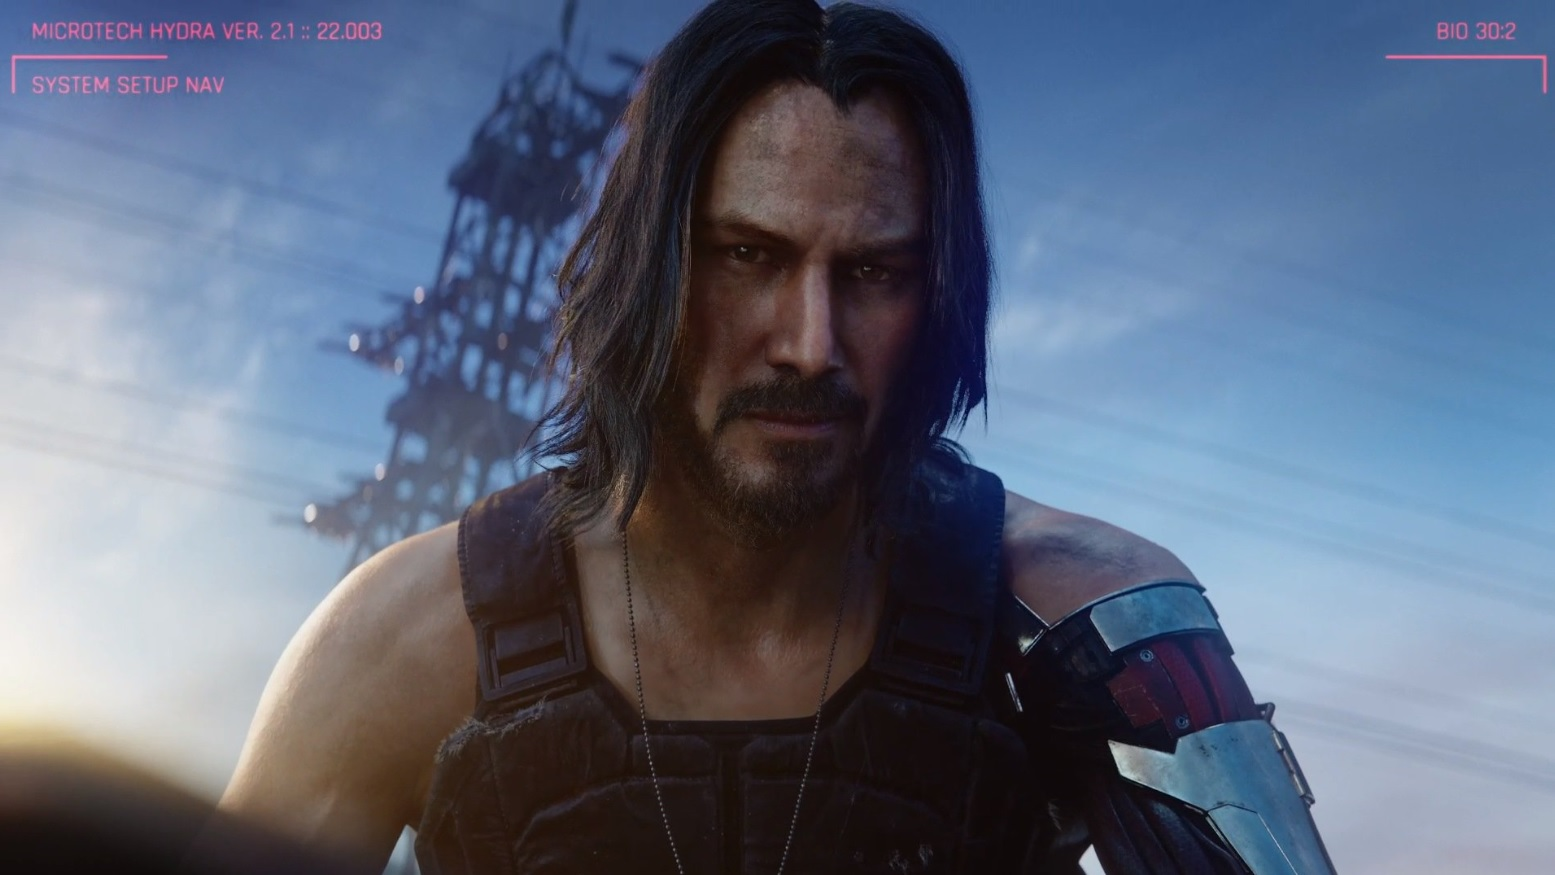 From Cyberpunk to Keanu Reeves: This is the unpublished origin story